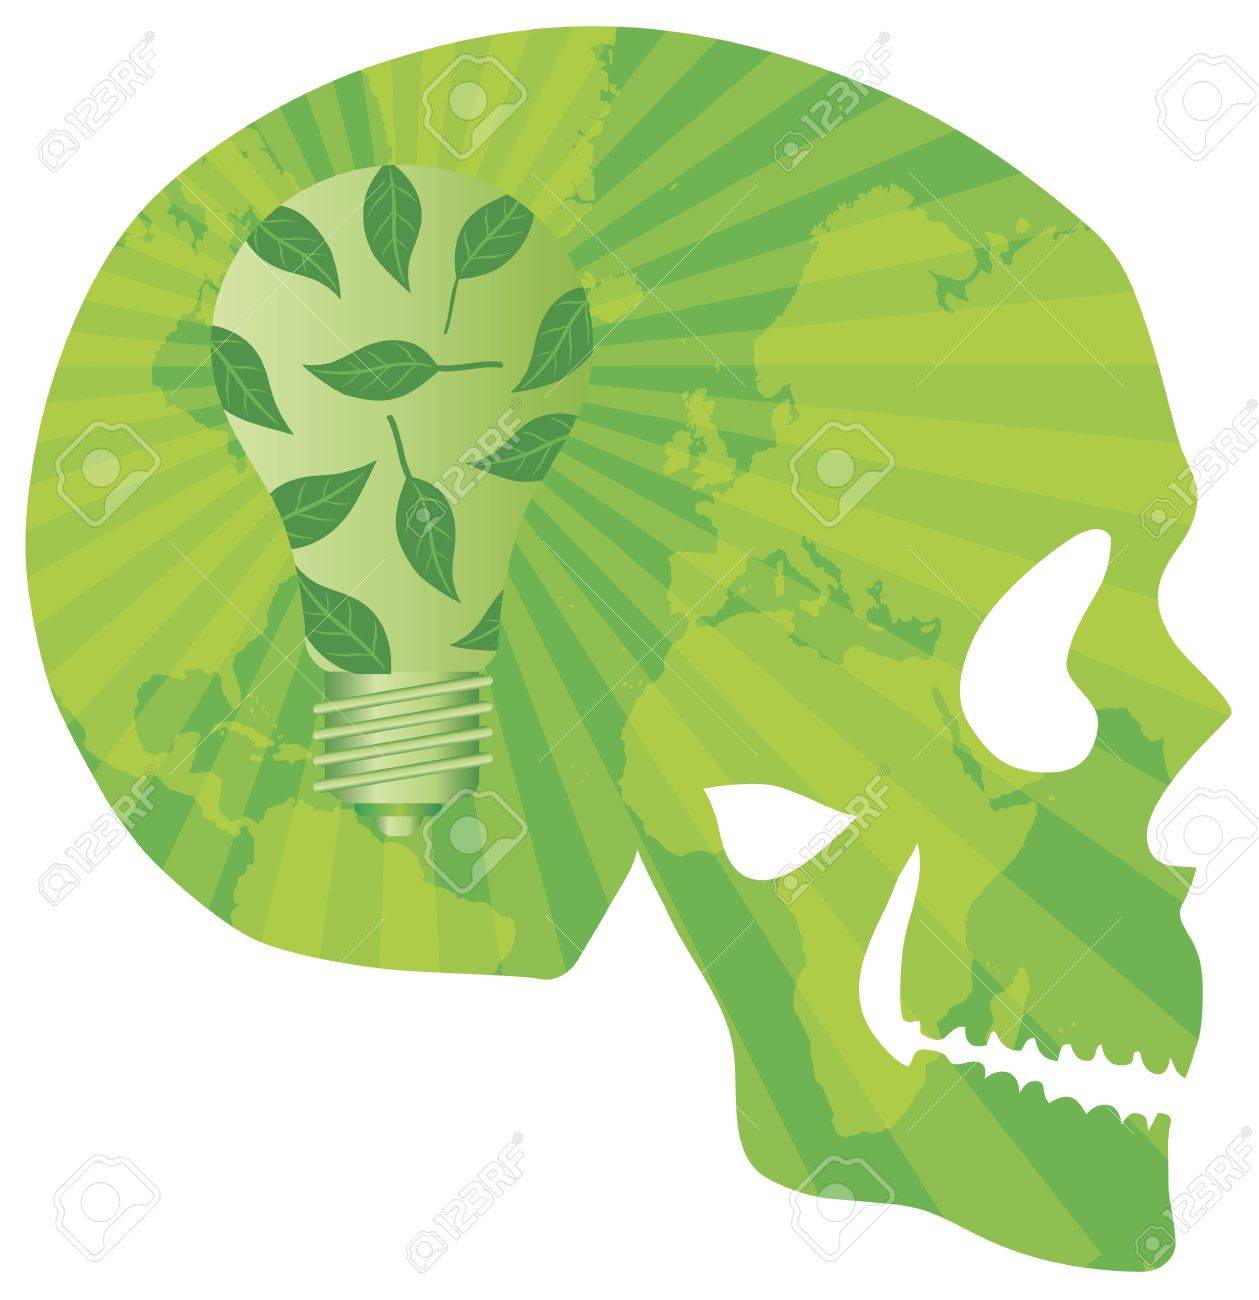 Think Green Skull with Lightbulb Green Leaves and World Map in Silhouette Illustration Stock Vector - 16104368